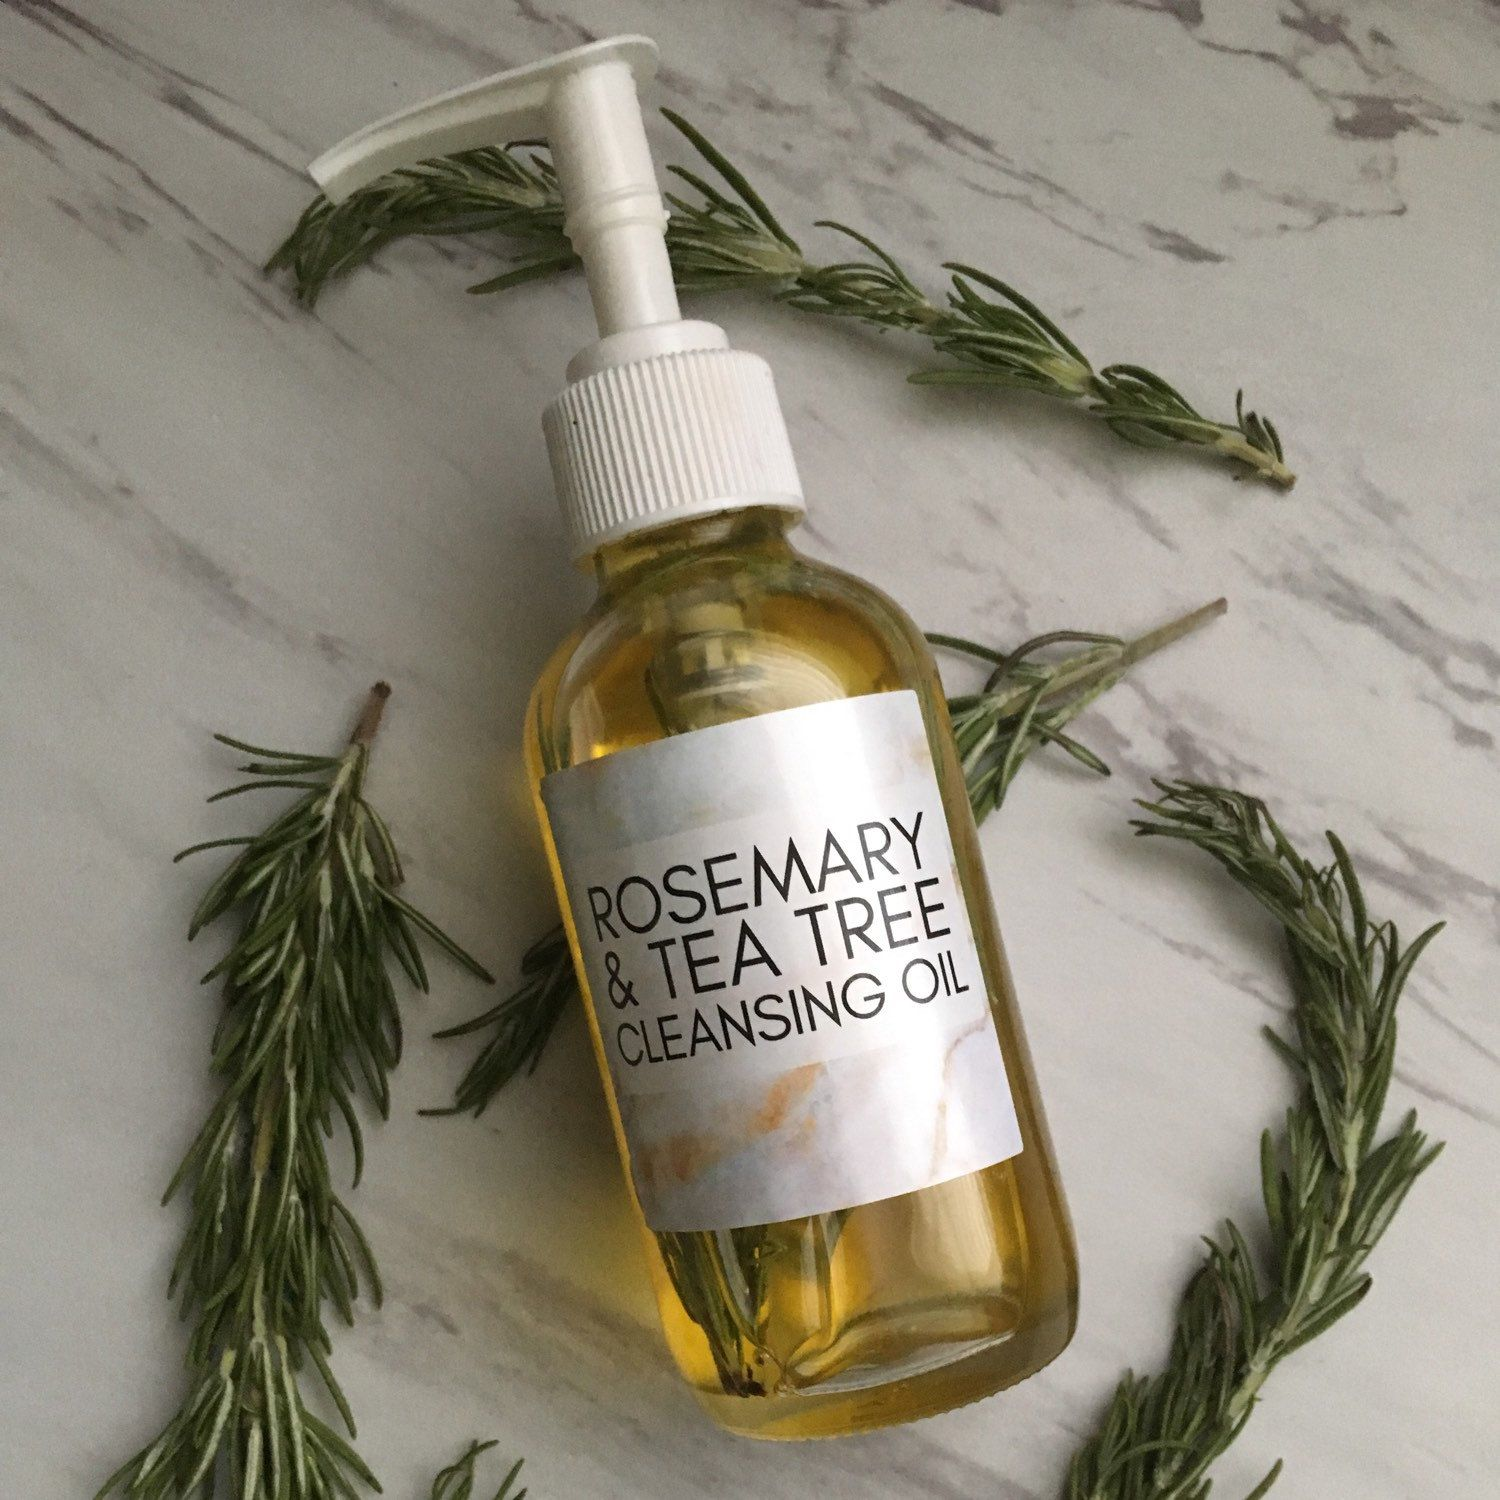 New oil cleanser in the shop! (Yes, oil cleansing IS as